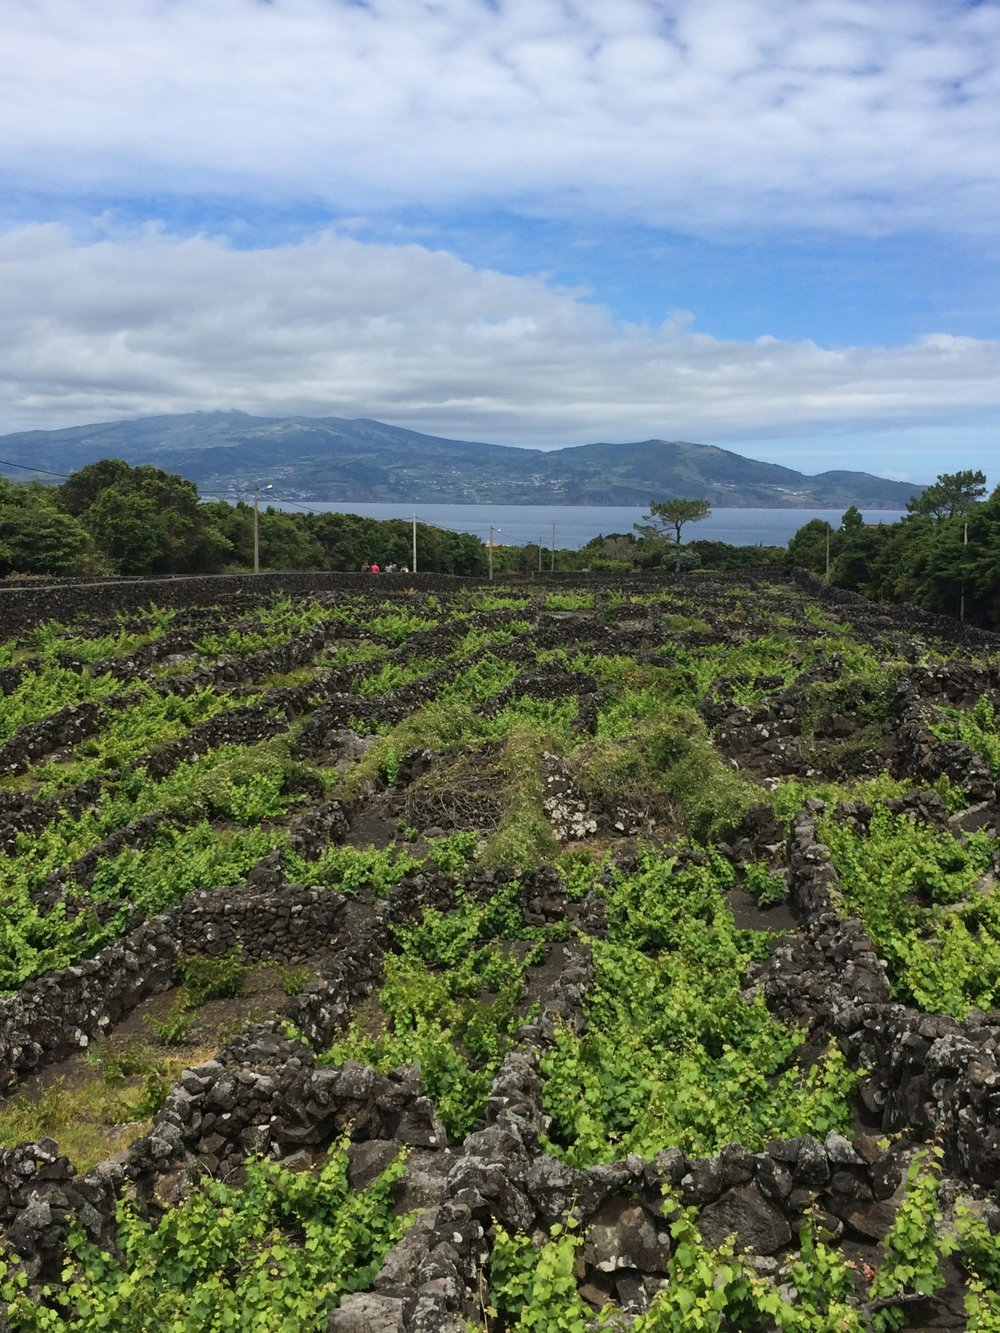 Wine grapes planted within basalt walls at the edge of the sea.